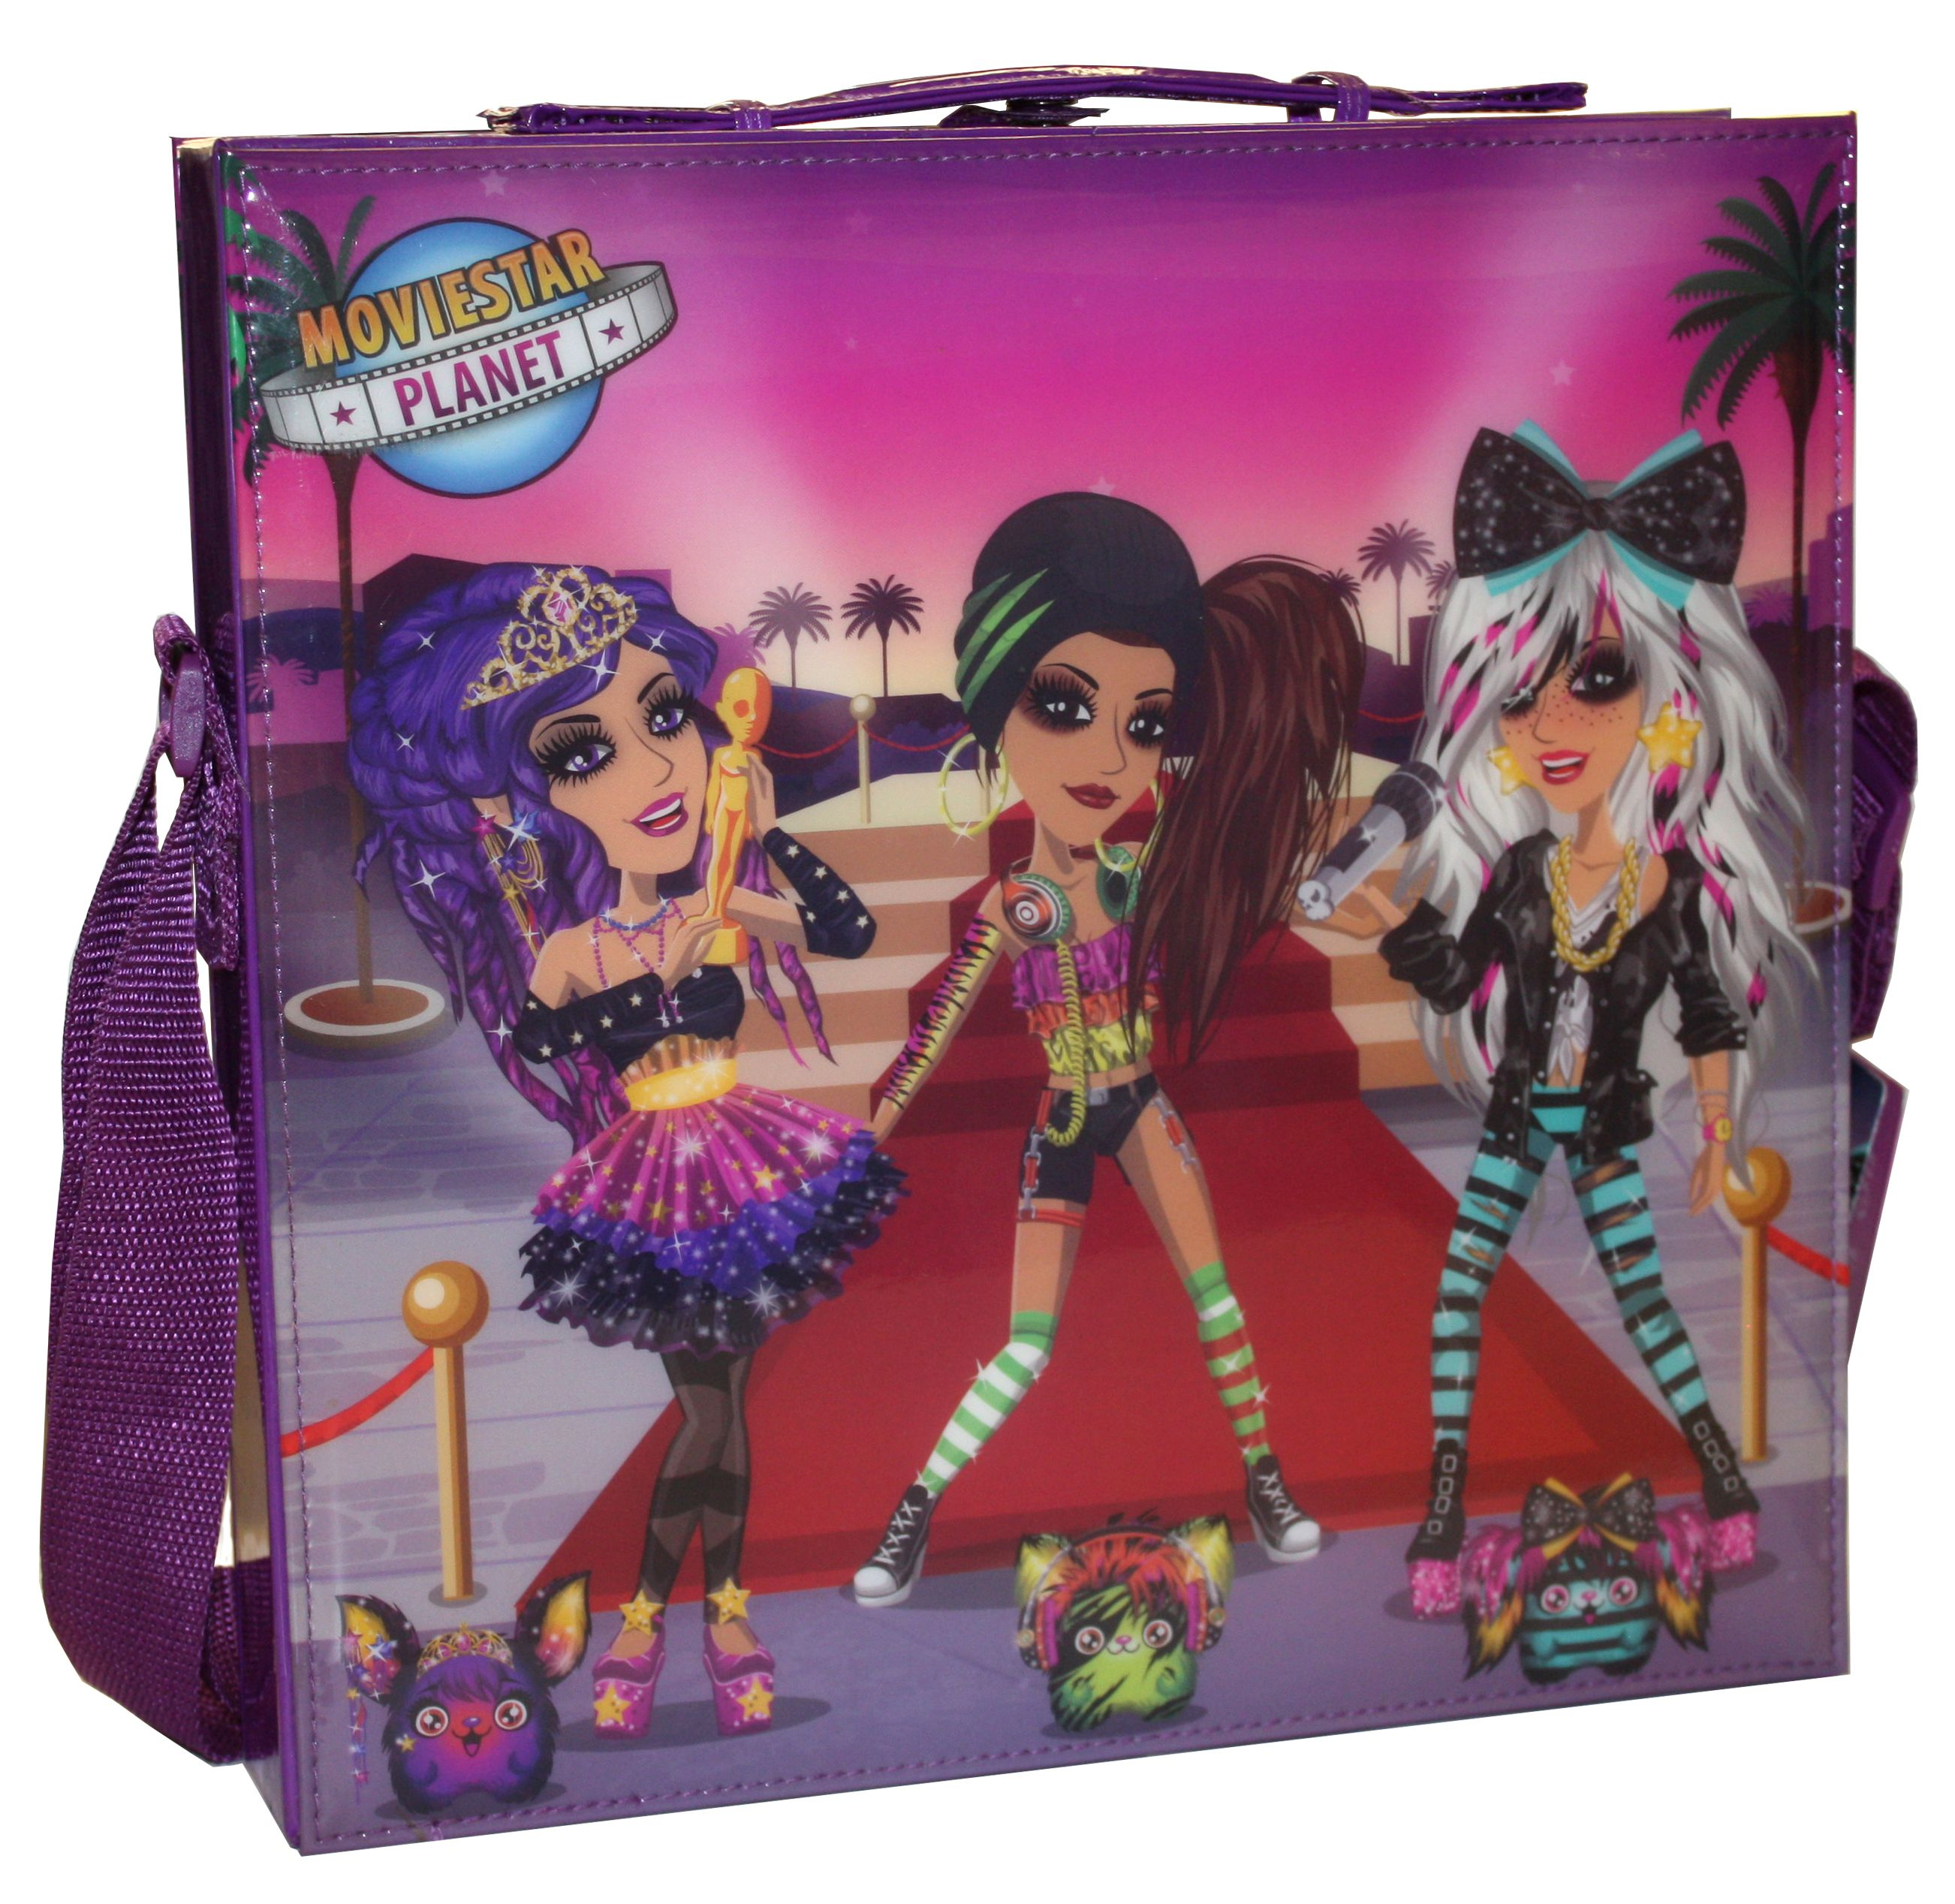 How amazing is the msp makeup artist case